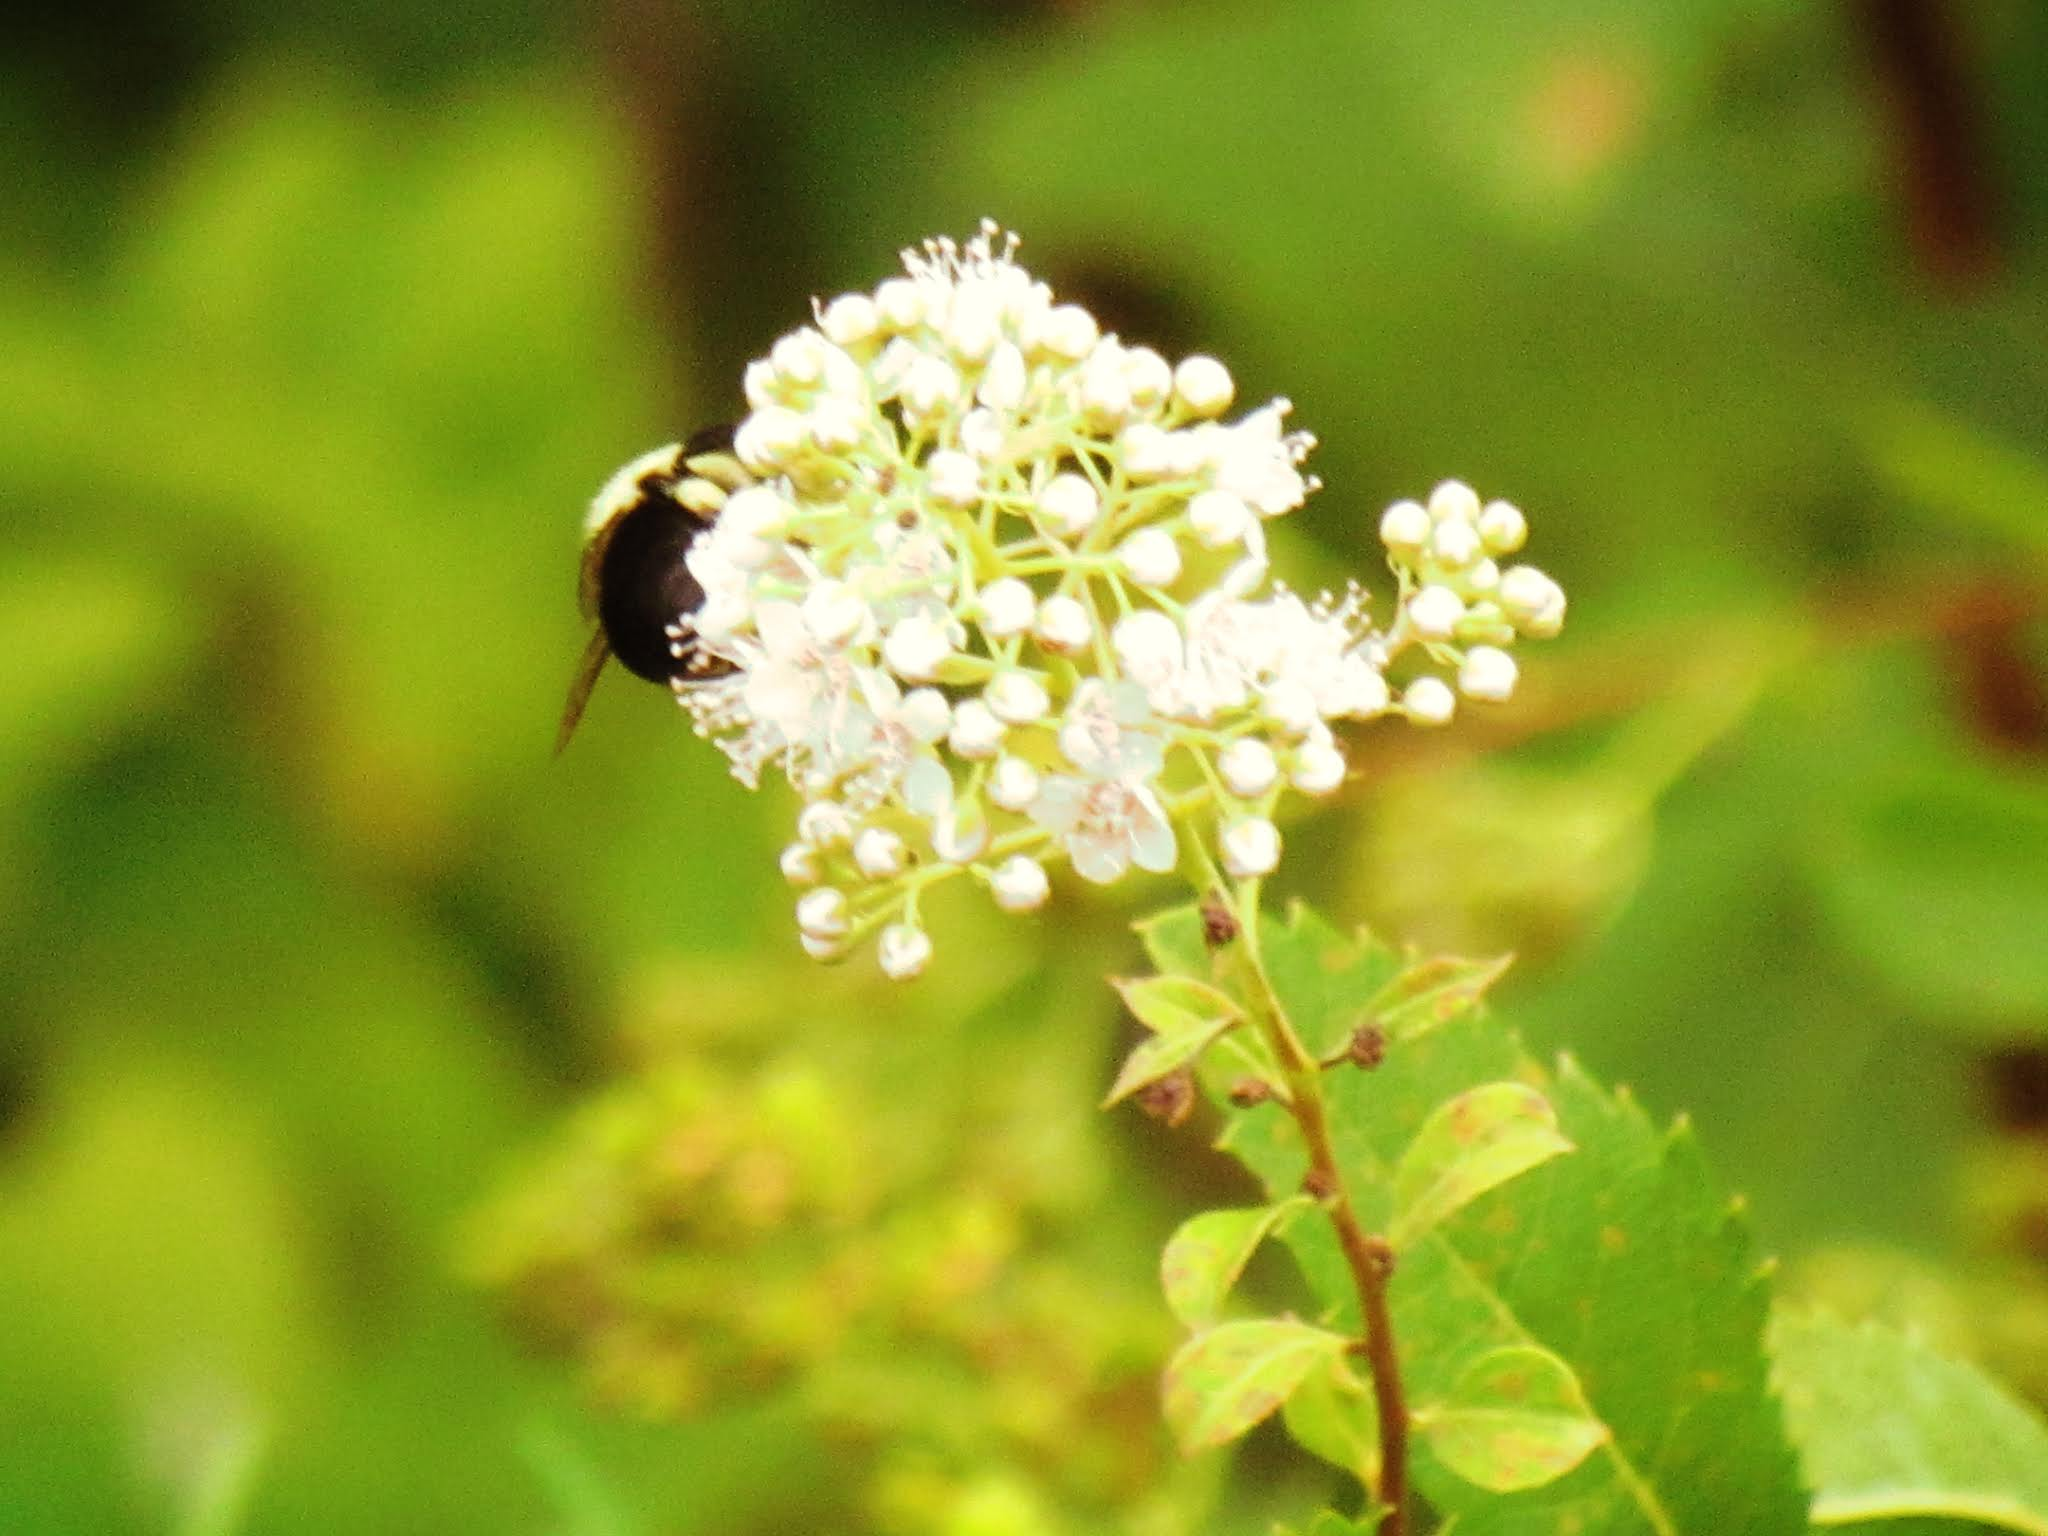 Seasonal Bucket List for Everyday Laurali Star - photo of Bumblebee pollinating a pretty white flower bloom